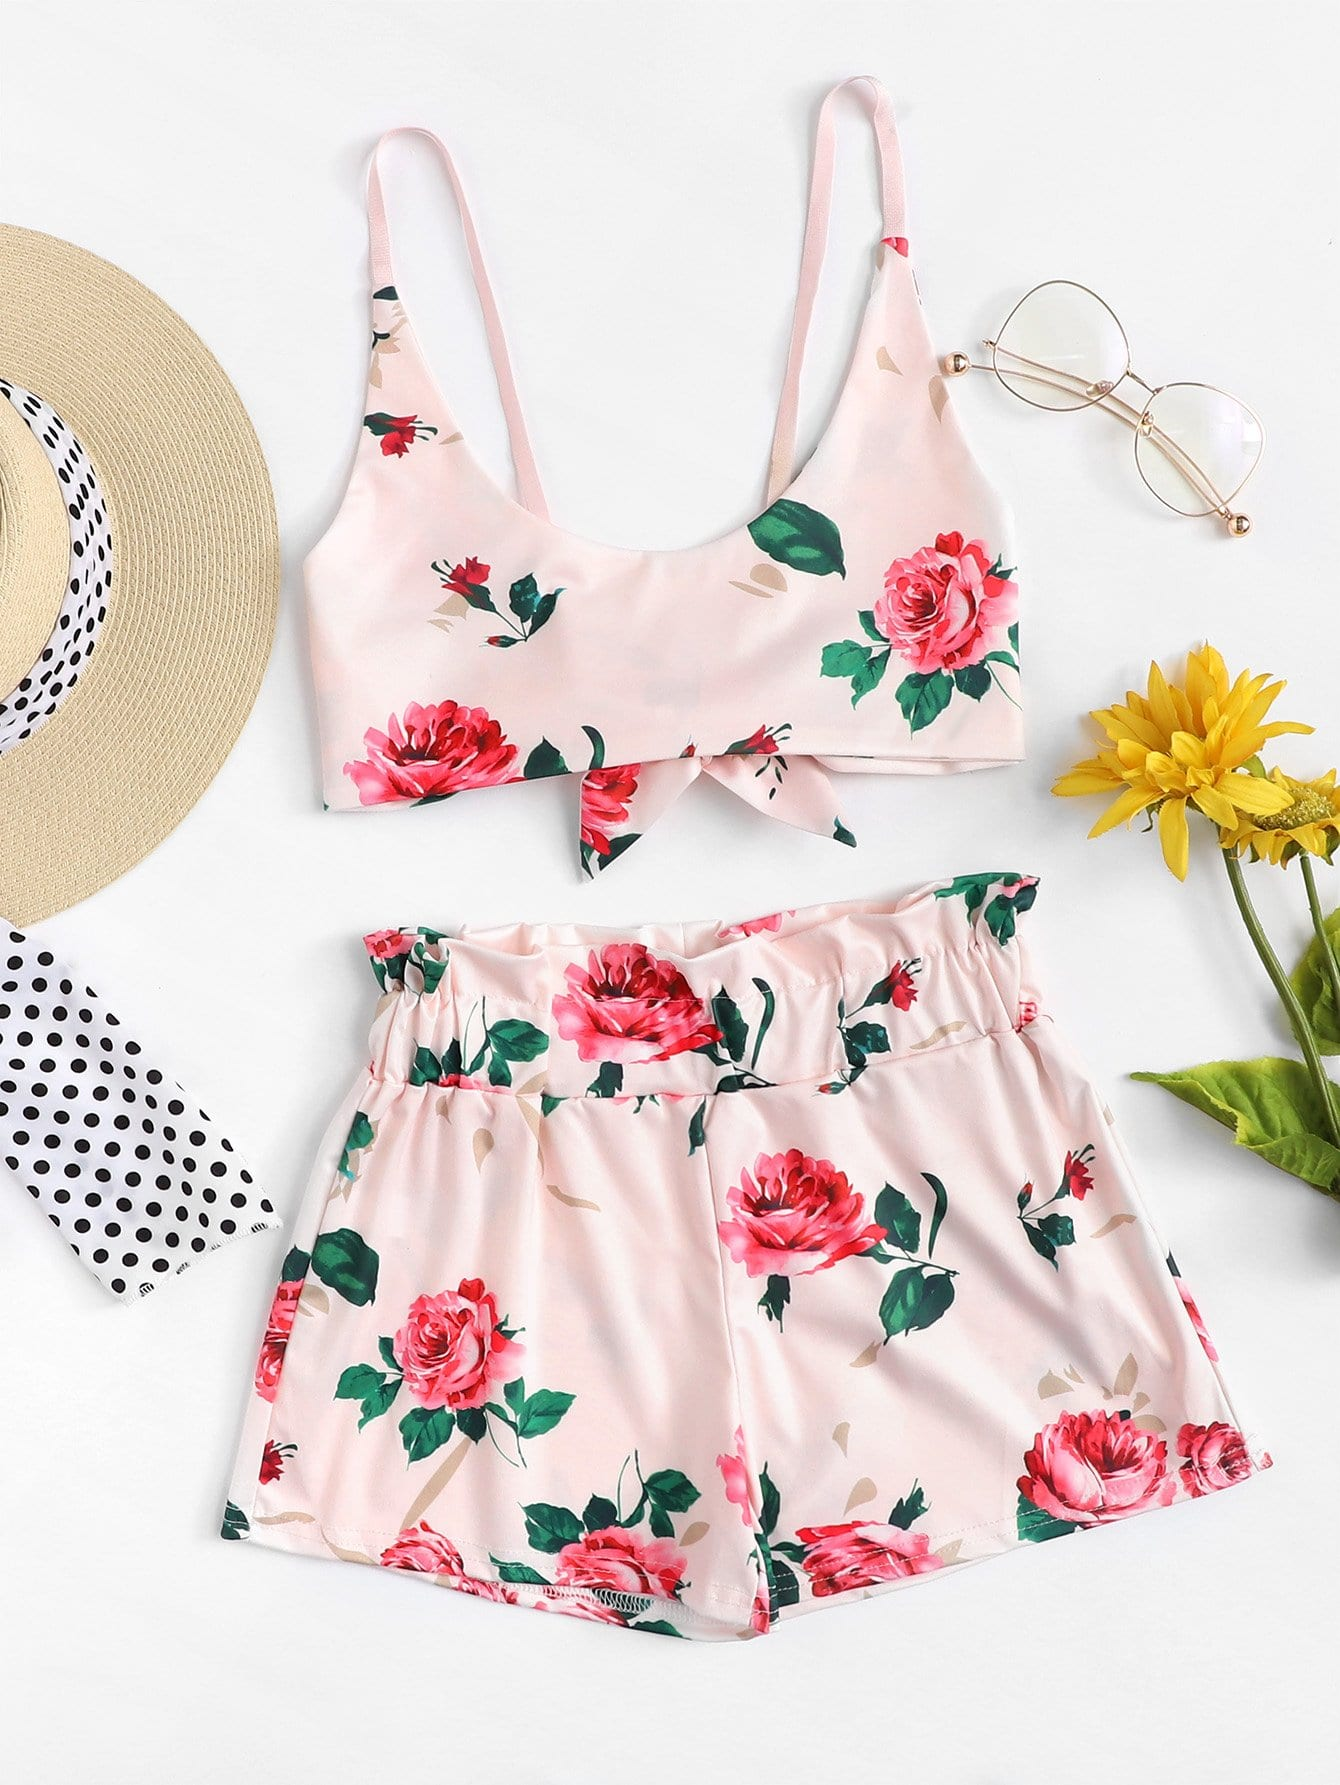 Tie Back Floral Print Crop Top With Shorts floral print crop top with shorts